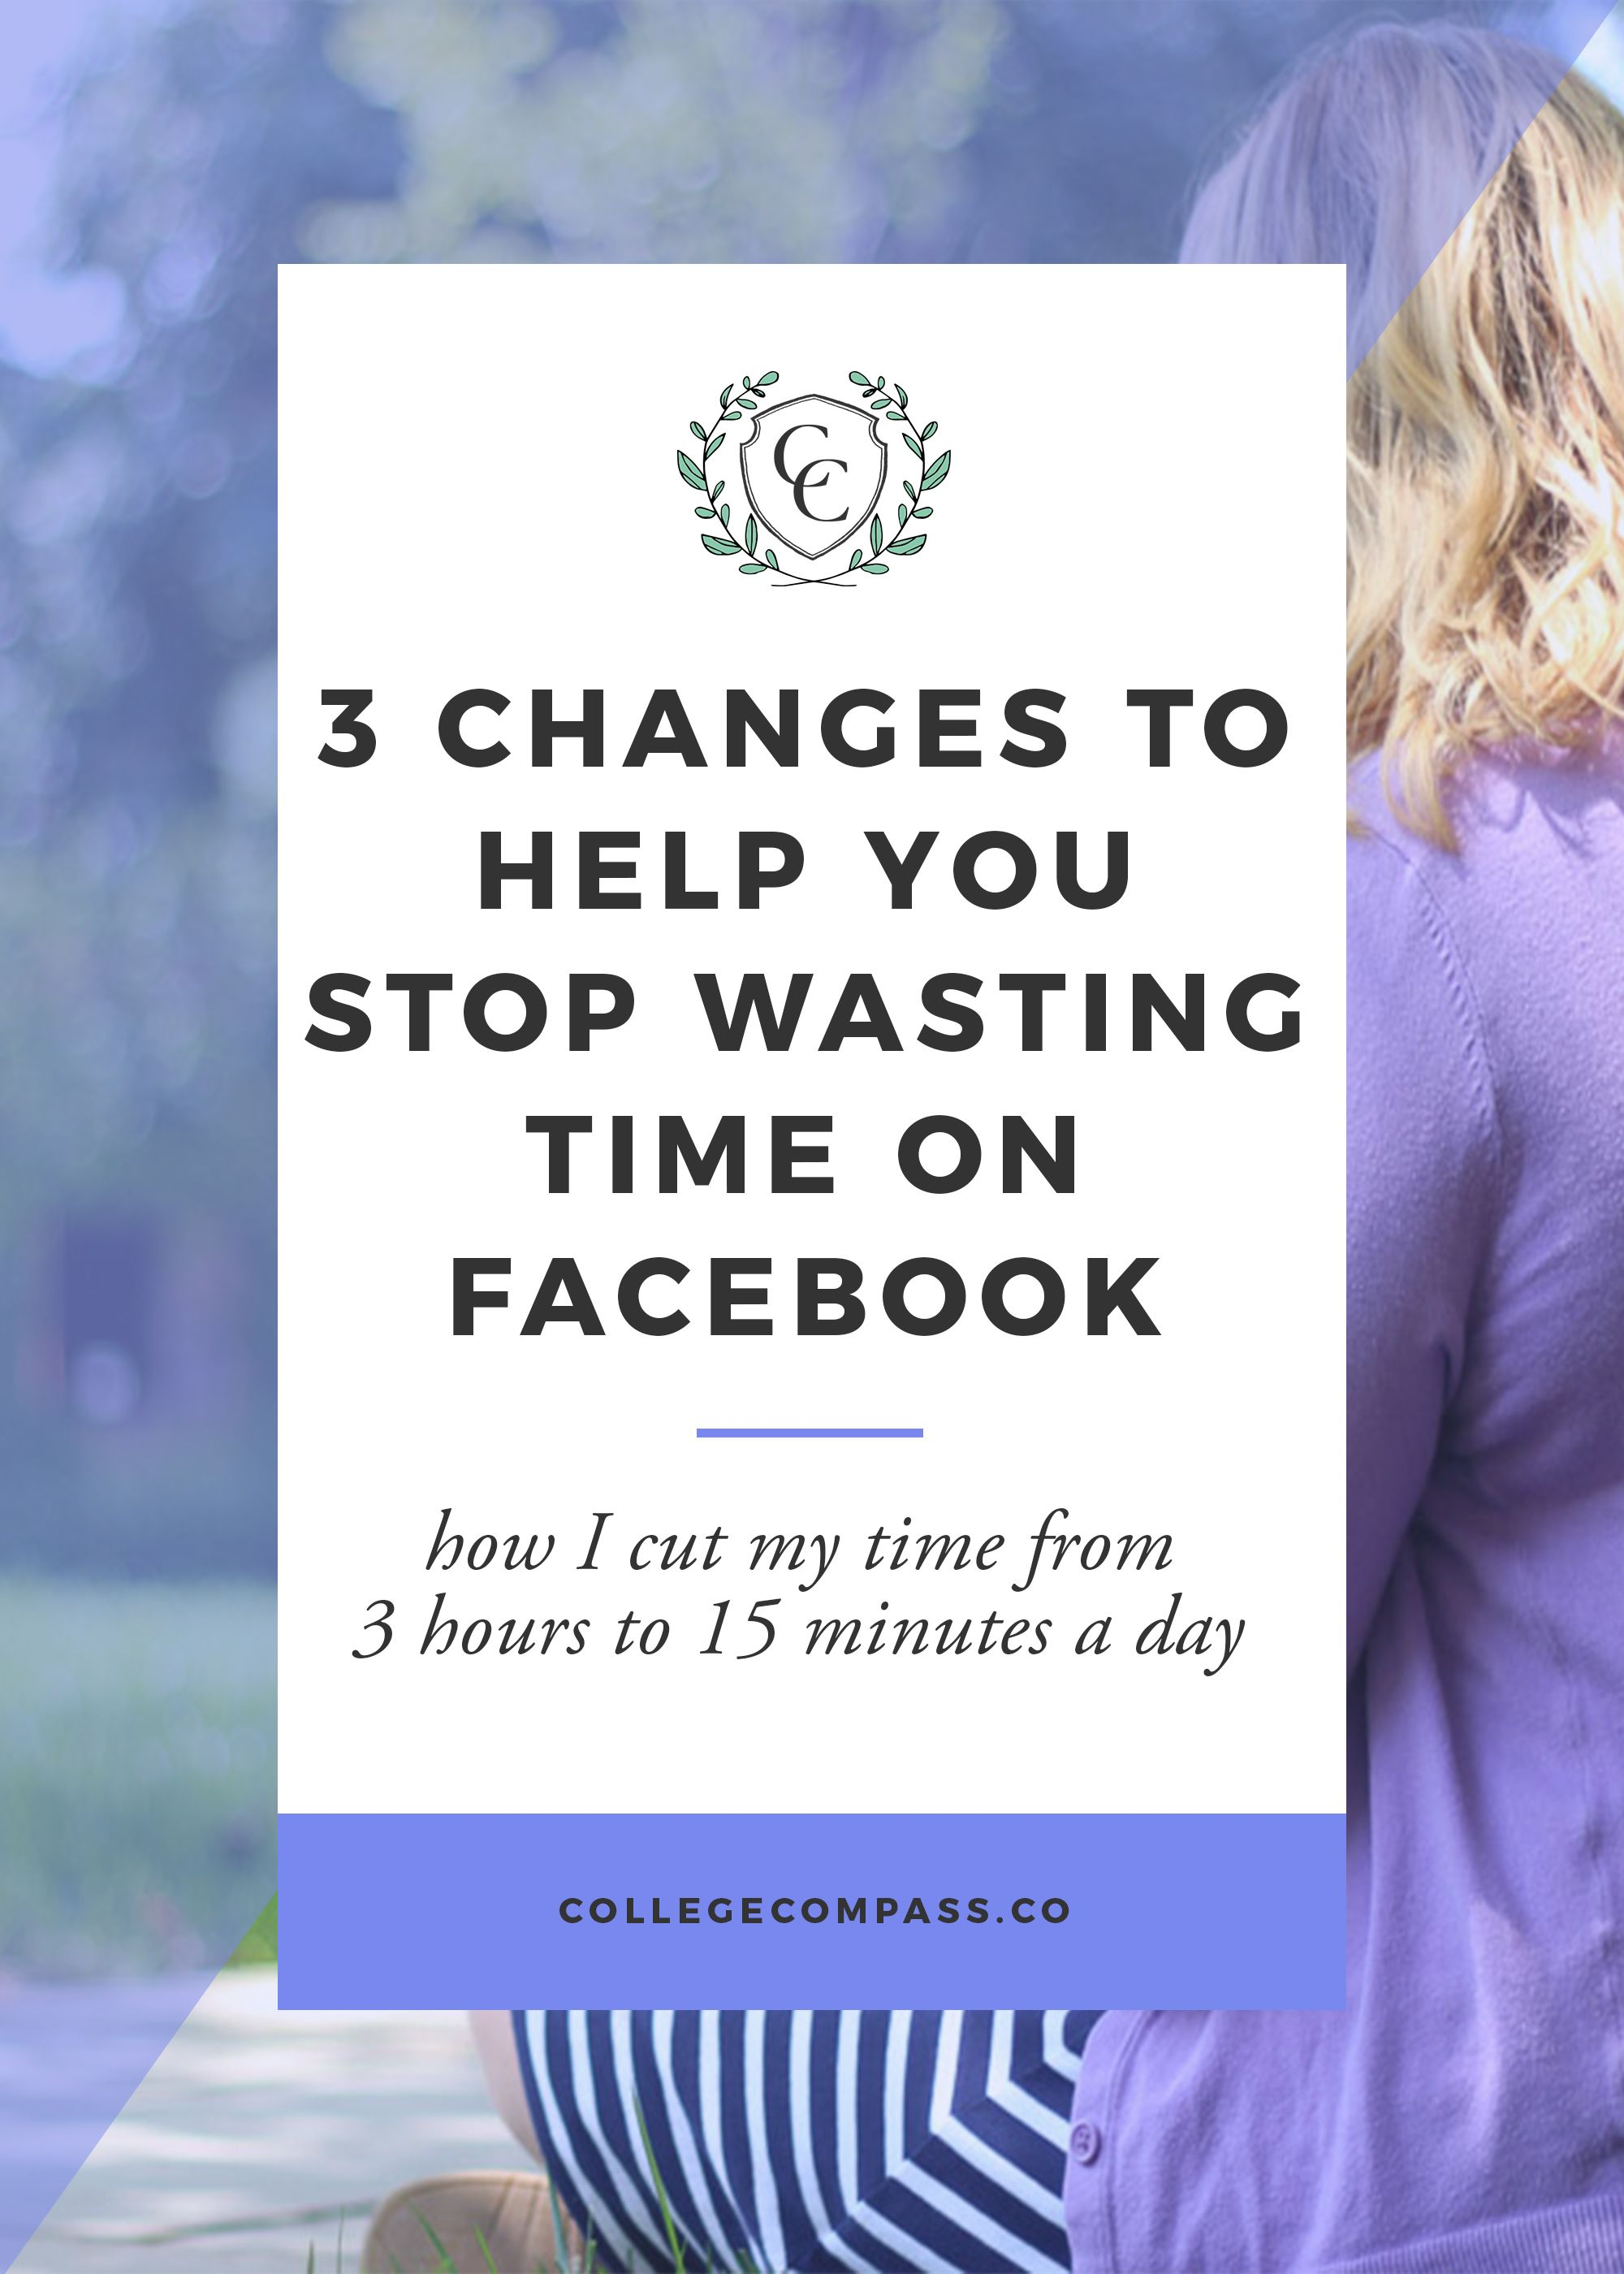 3 Quick Changes to Cut Down Facebook Time to 15 Minutes a Day